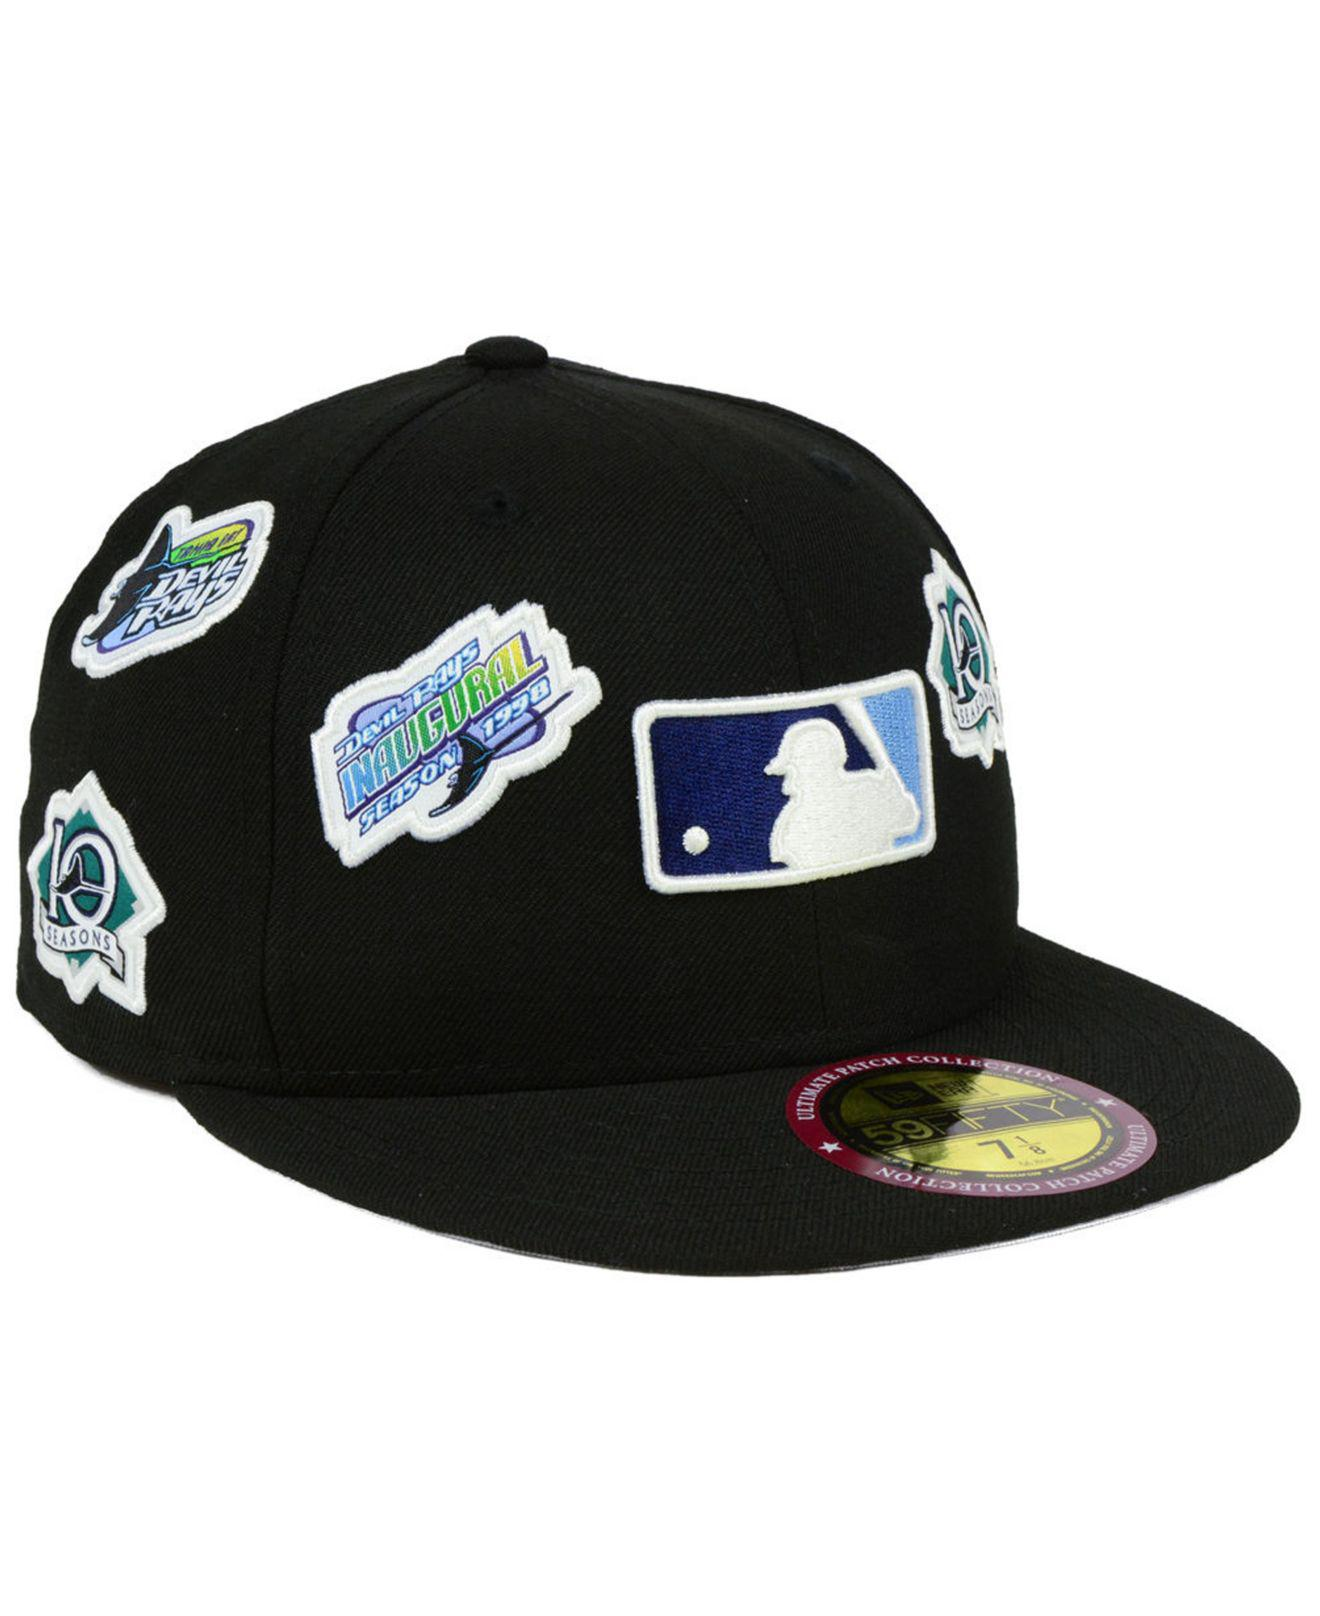 cdc5acca430 KTZ. Men s Black Tampa Bay Rays Ultimate Patch Collection All Patches  59fifty Cap